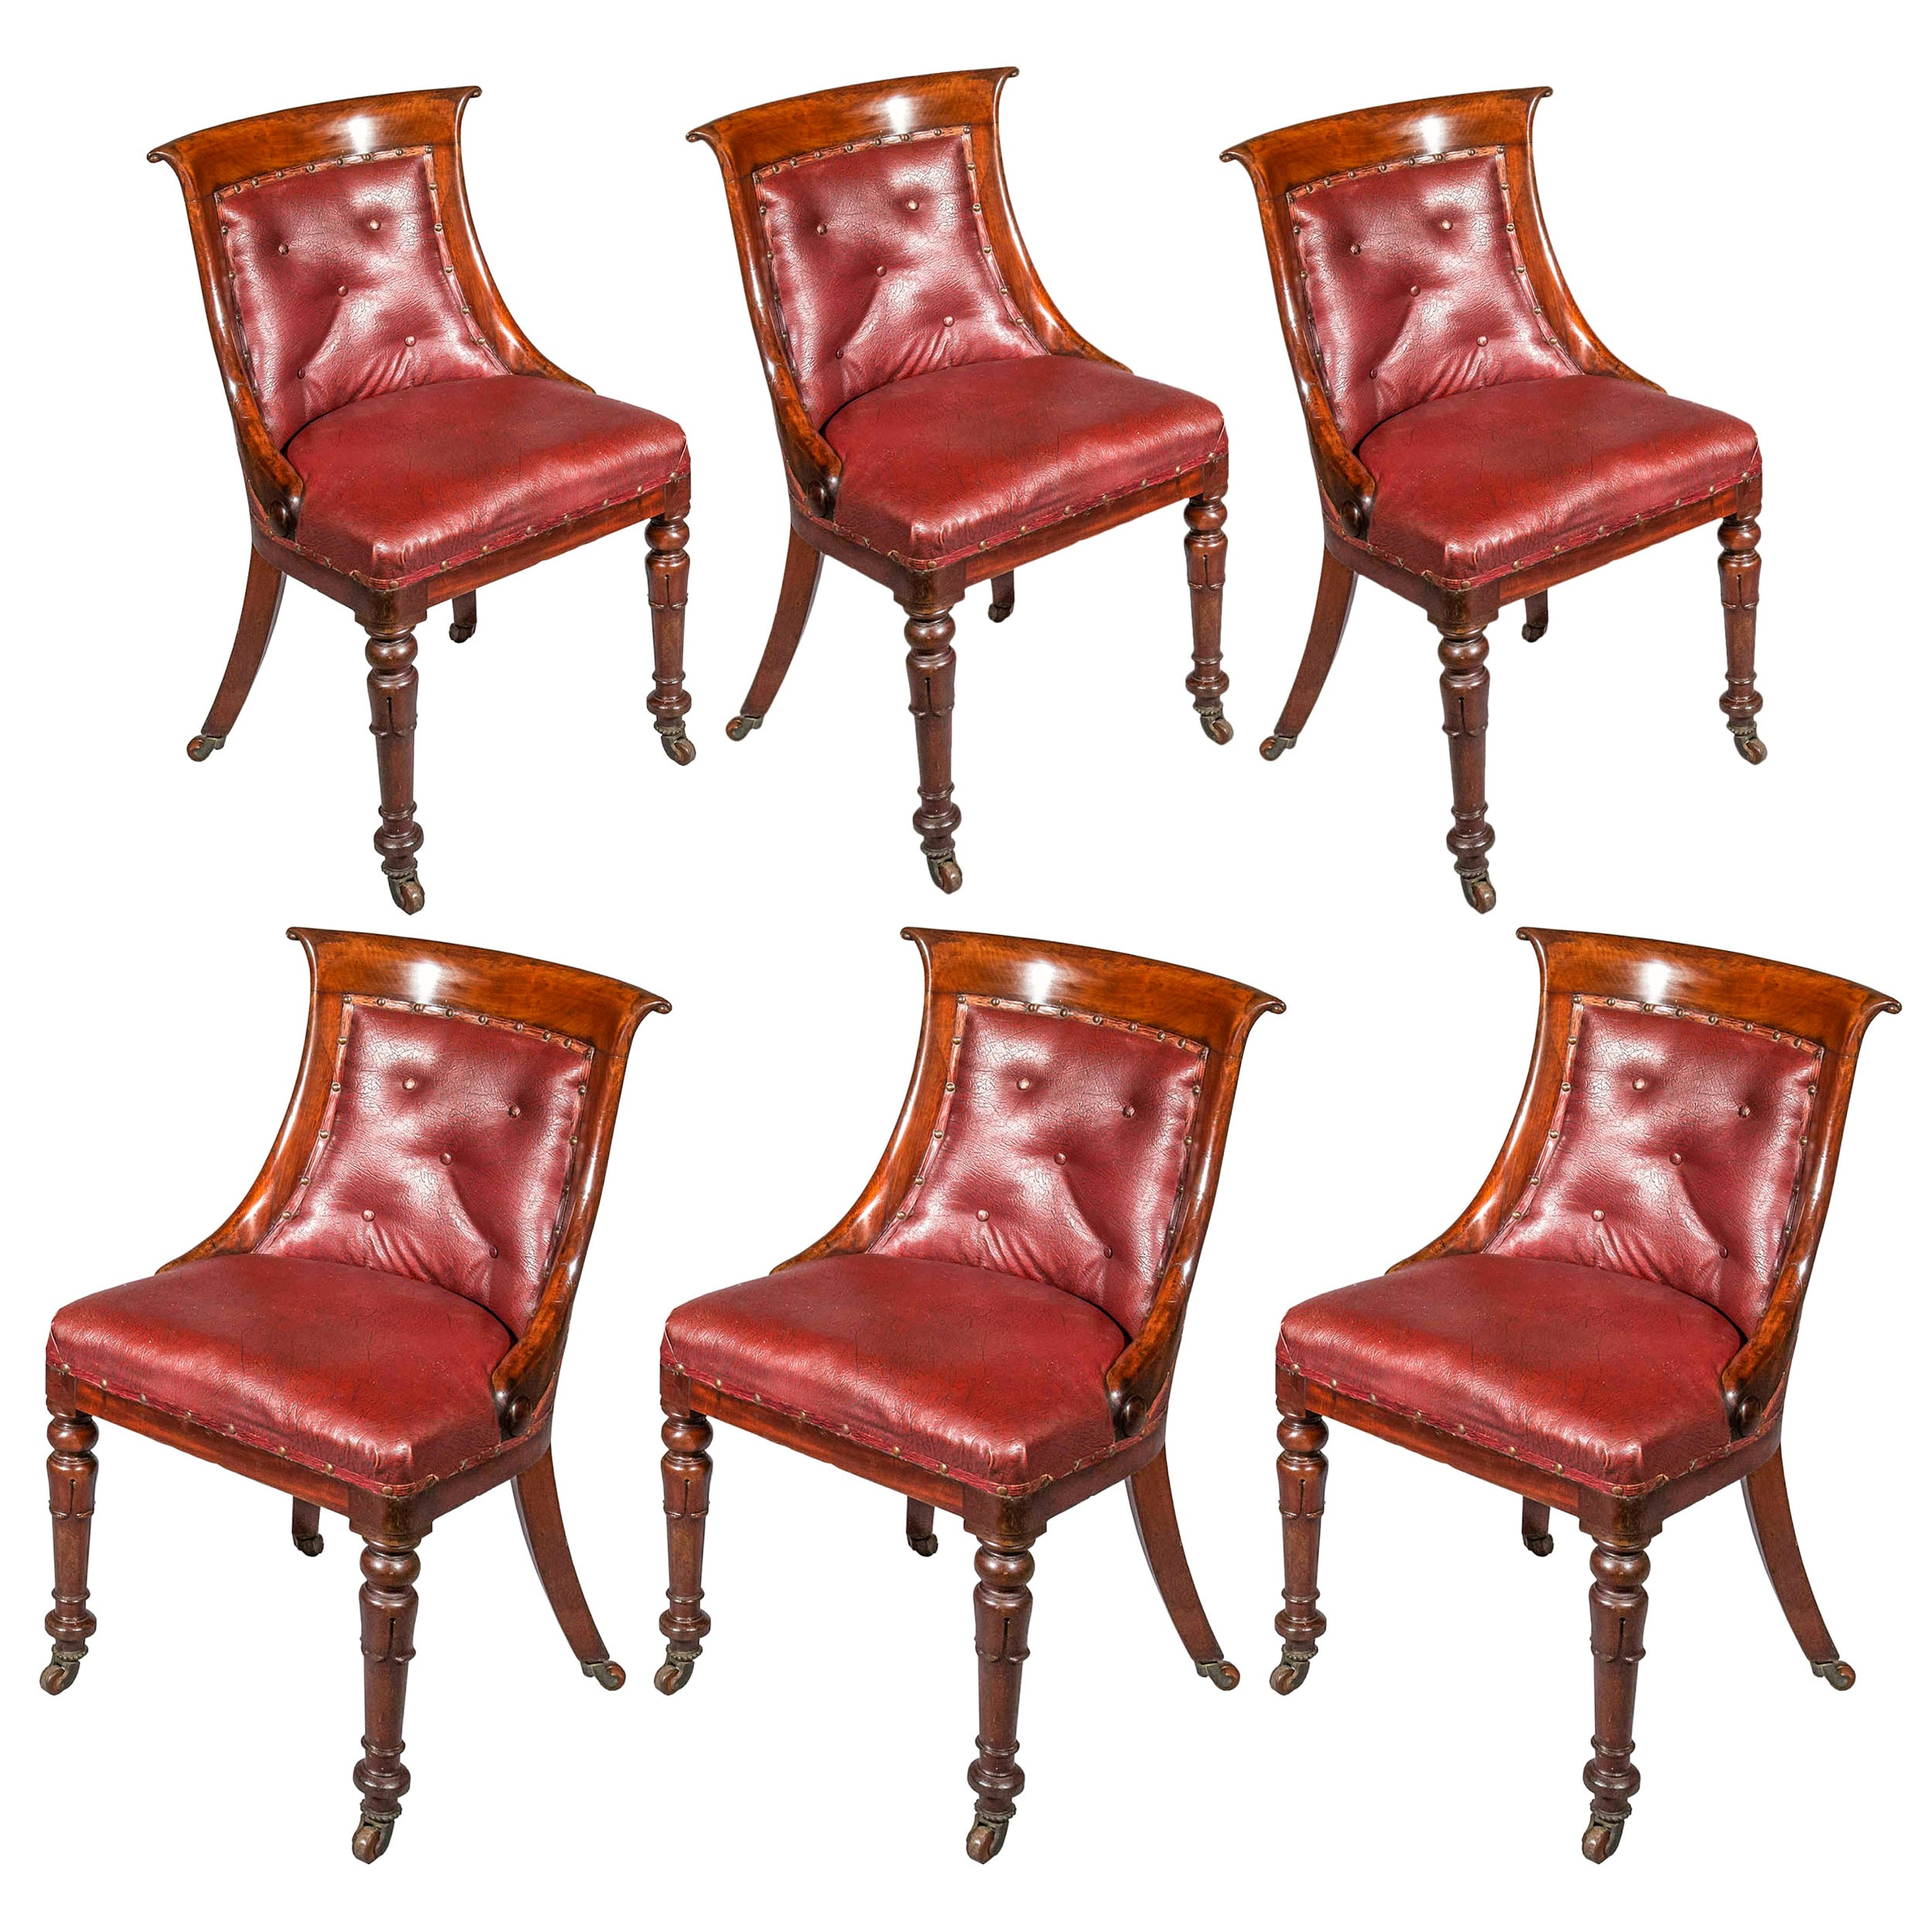 Antique Set of 6 Regency Side Chairs in Old Faux Leather